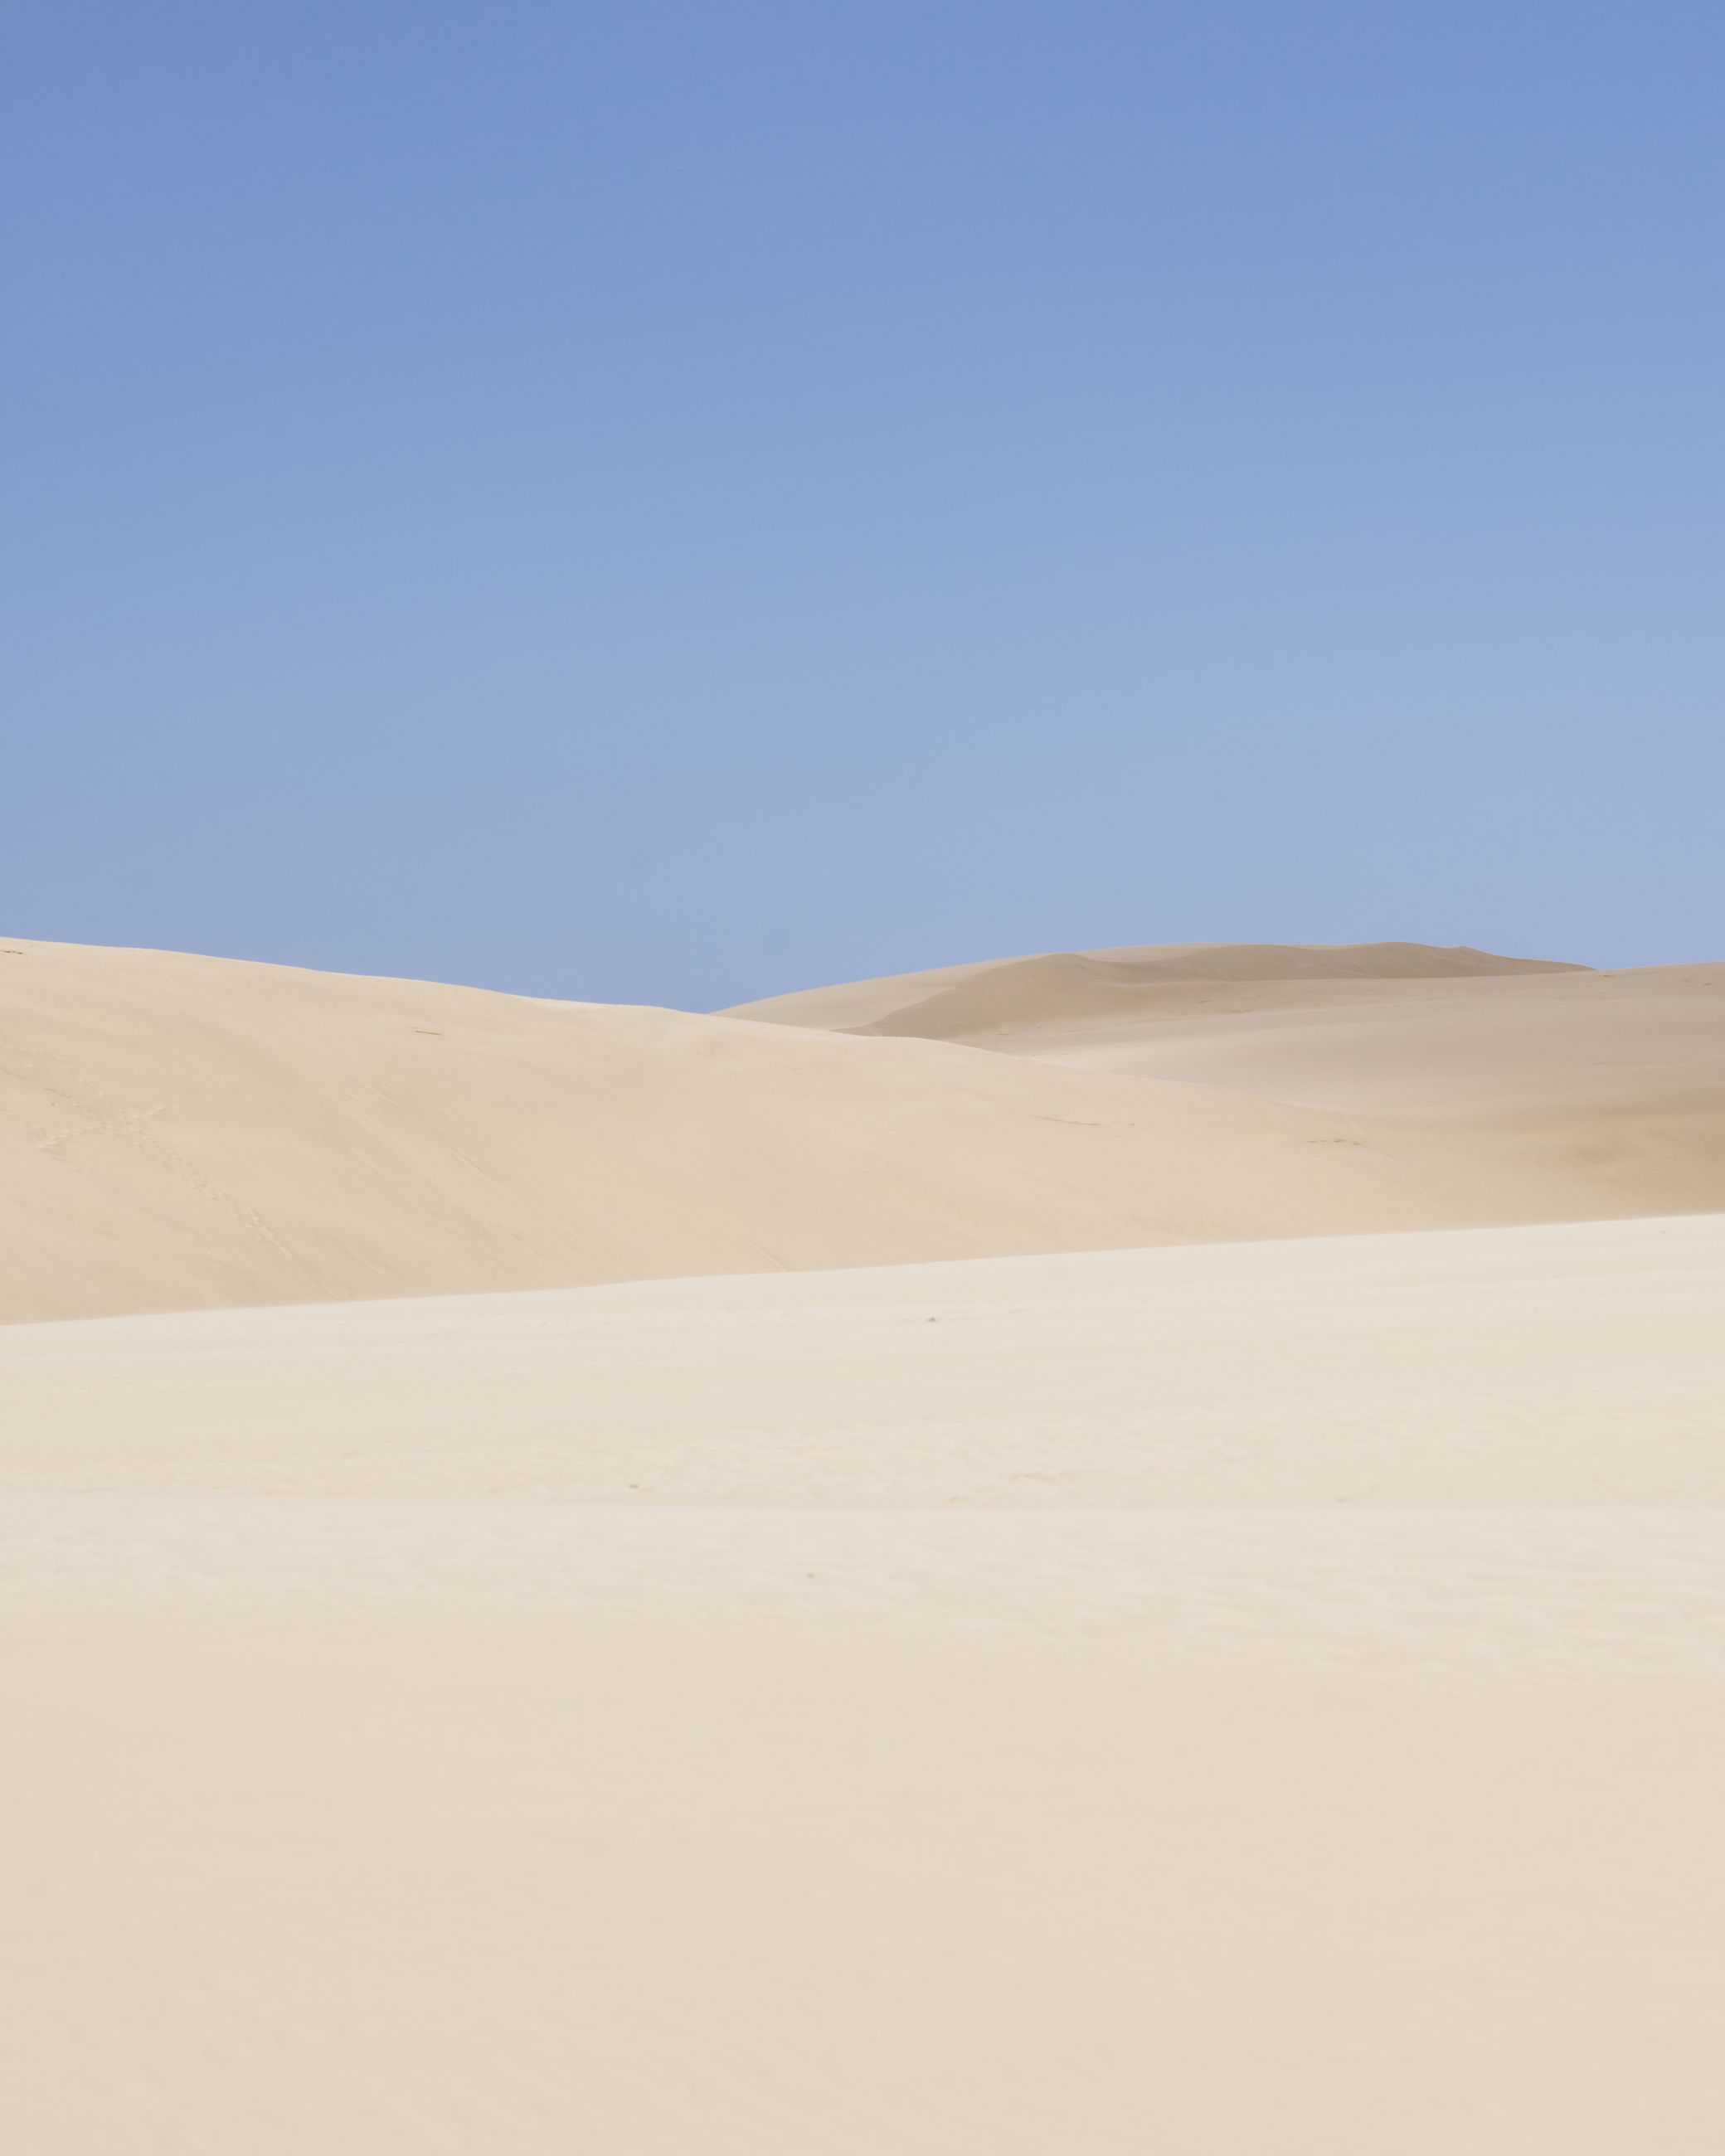 clear sky, copy space, blue, tranquility, tranquil scene, landscape, scenics, beauty in nature, nature, desert, remote, day, non-urban scene, outdoors, sand dune, horizon over land, no people, arid climate, idyllic, mountain